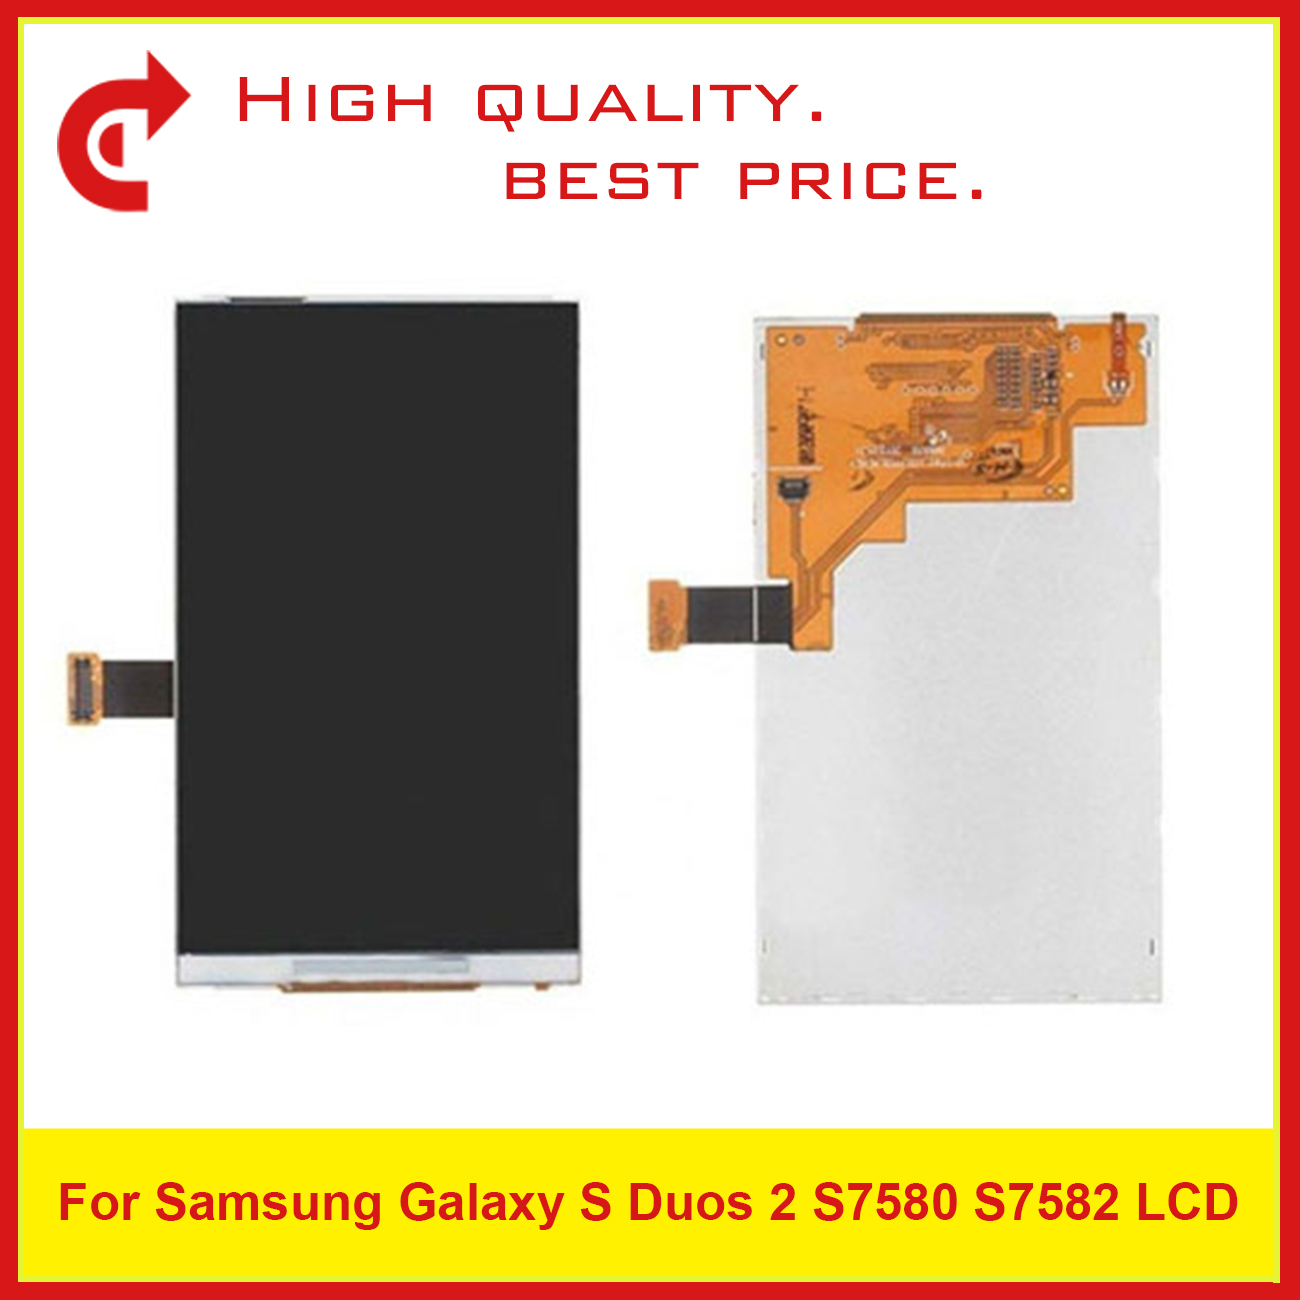 High Quality 4 0 quot For Samsung Galaxy S Duos 2 S7580 S7582 LCD Display With Touch Screen Digitizer Sensor Panel Tracking Code in Mobile Phone LCD Screens from Cellphones amp Telecommunications